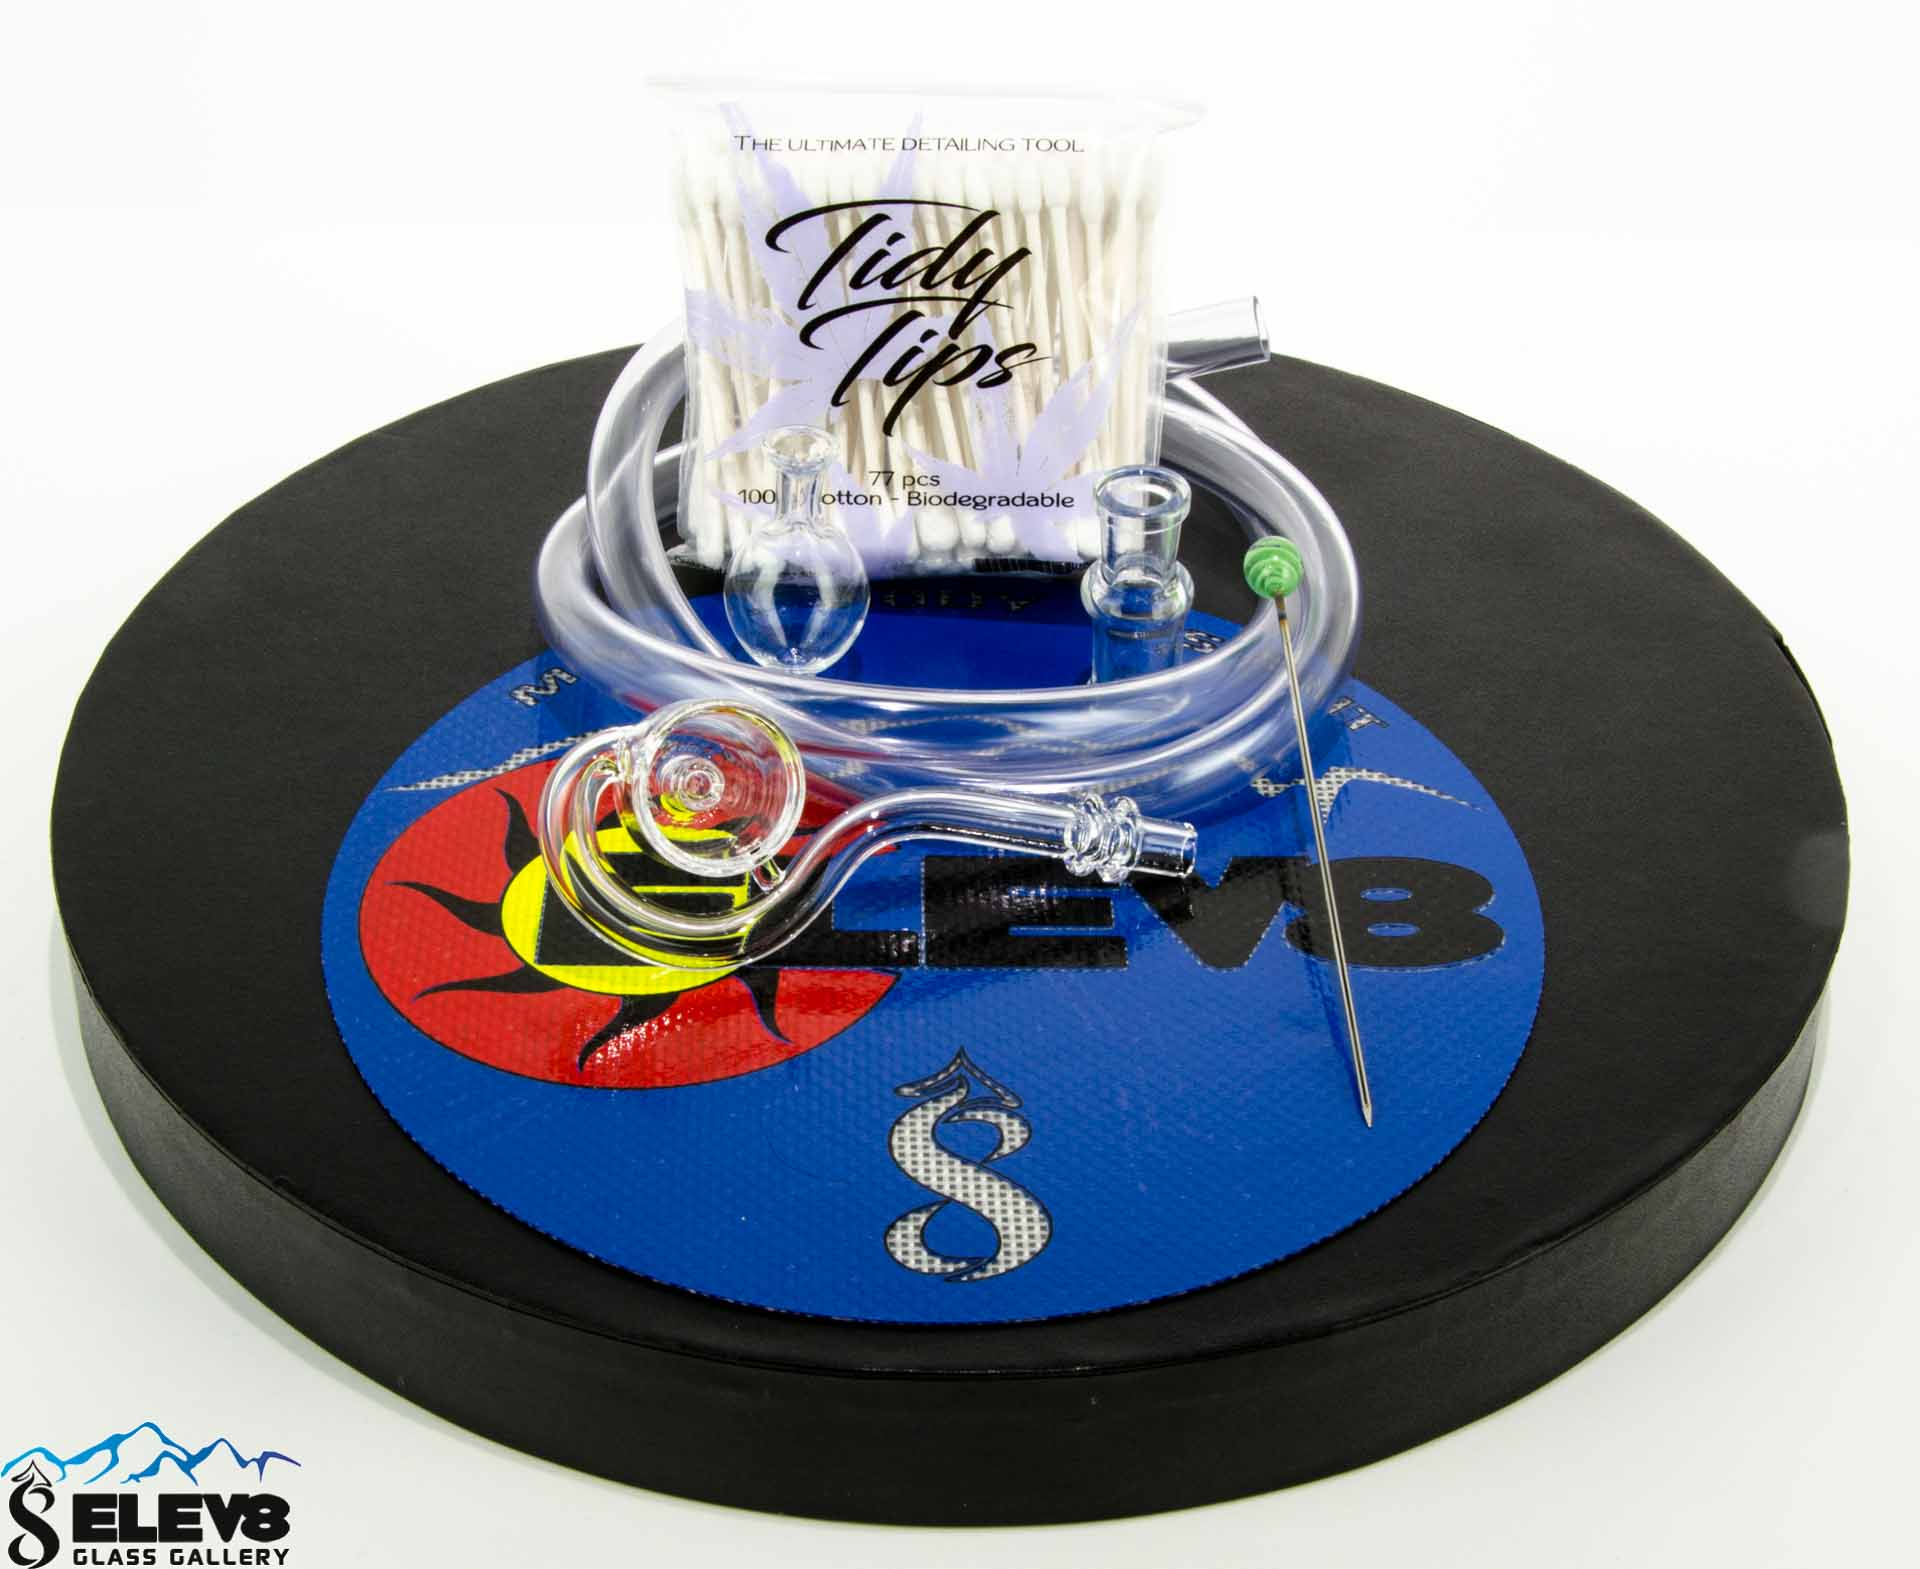 Silver Surfer SSV Oil Kits silver surfer, ssv, oil kit, wax, extracts, 7th floor, ssv vaporizer, eok,